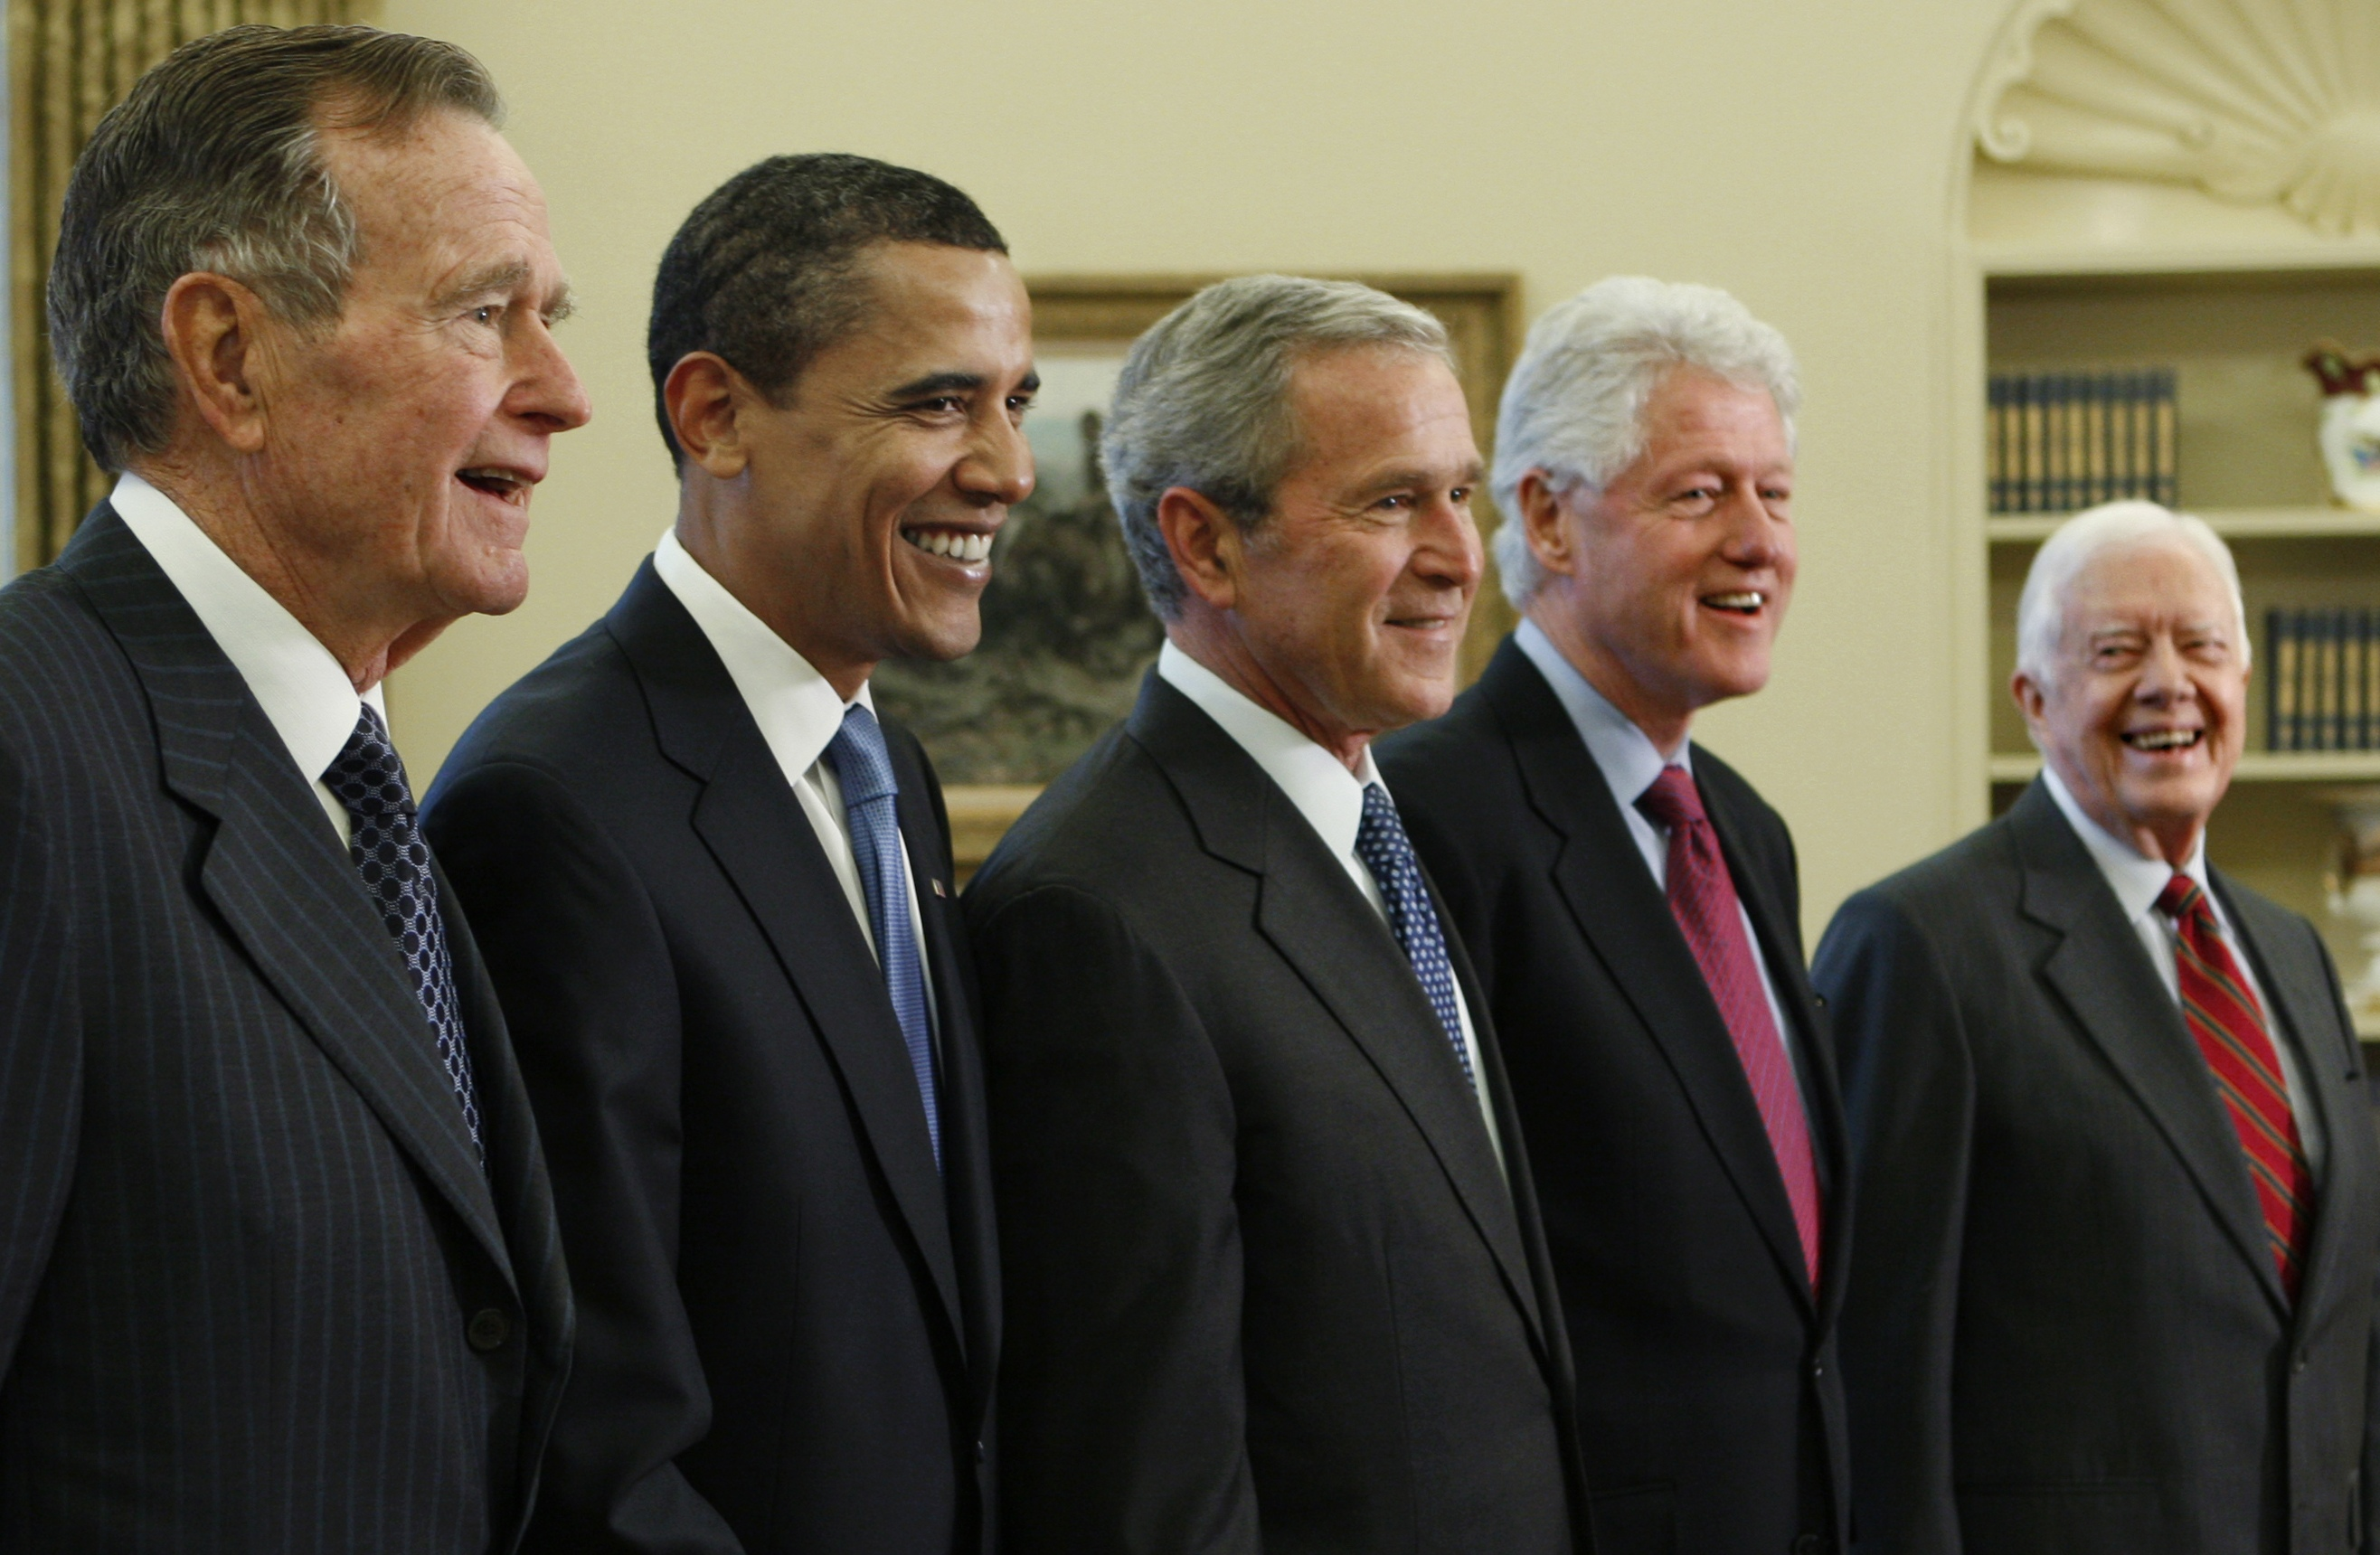 The so-called Presidents' Club. America's living presidents from left: Then President